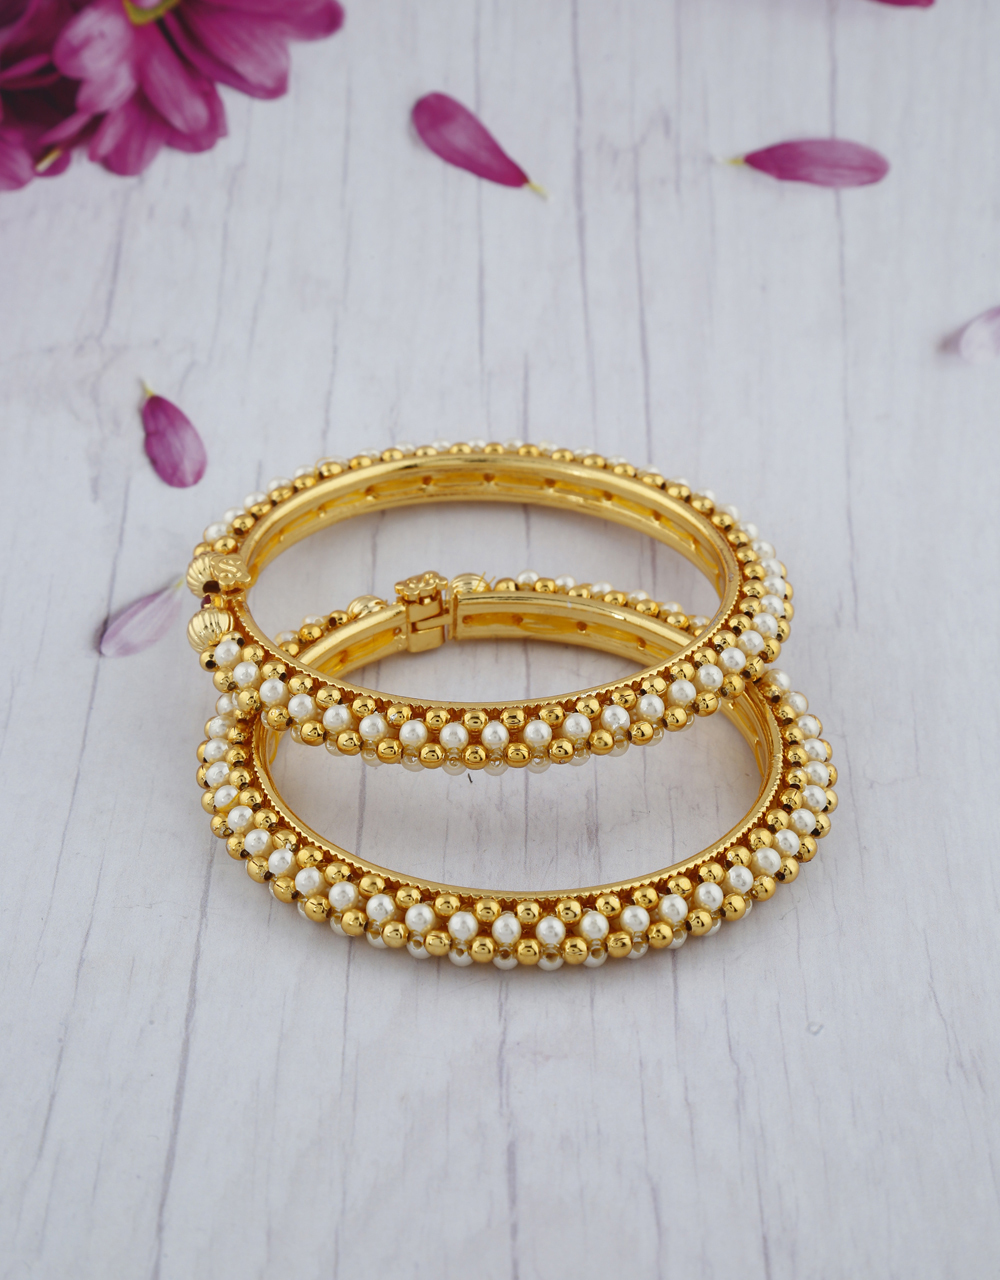 Exclusive Golden Colour Beads And Pearl Studded Traditional Bangles Design.